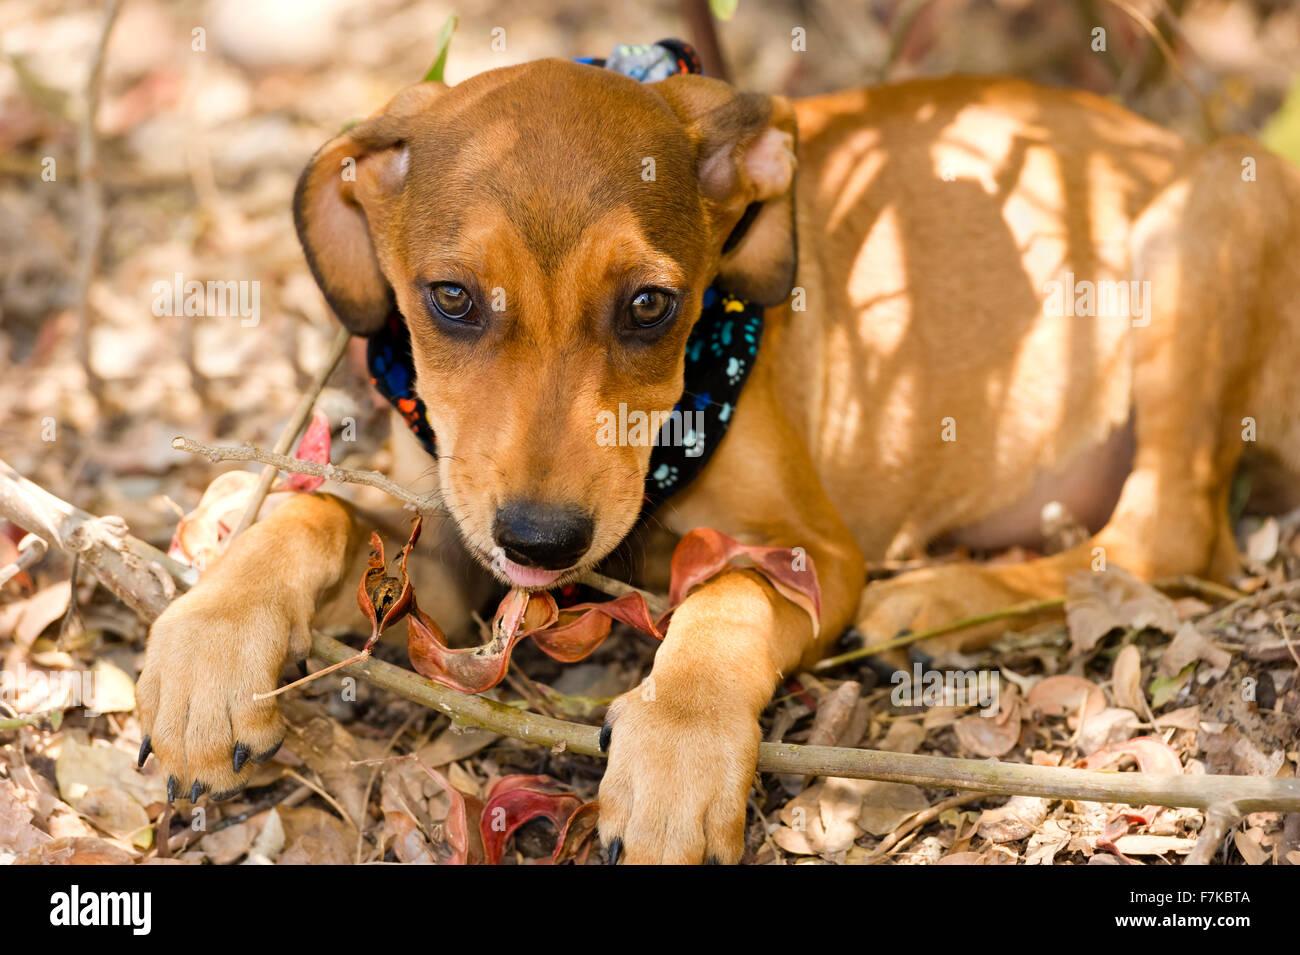 Best Cute Canine Brown Adorable Dog - cute-dog-face-is-an-adorable-brown-puppy-dog-with-big-brown-eyes-and-F7KBTA  Graphic_364298  .jpg